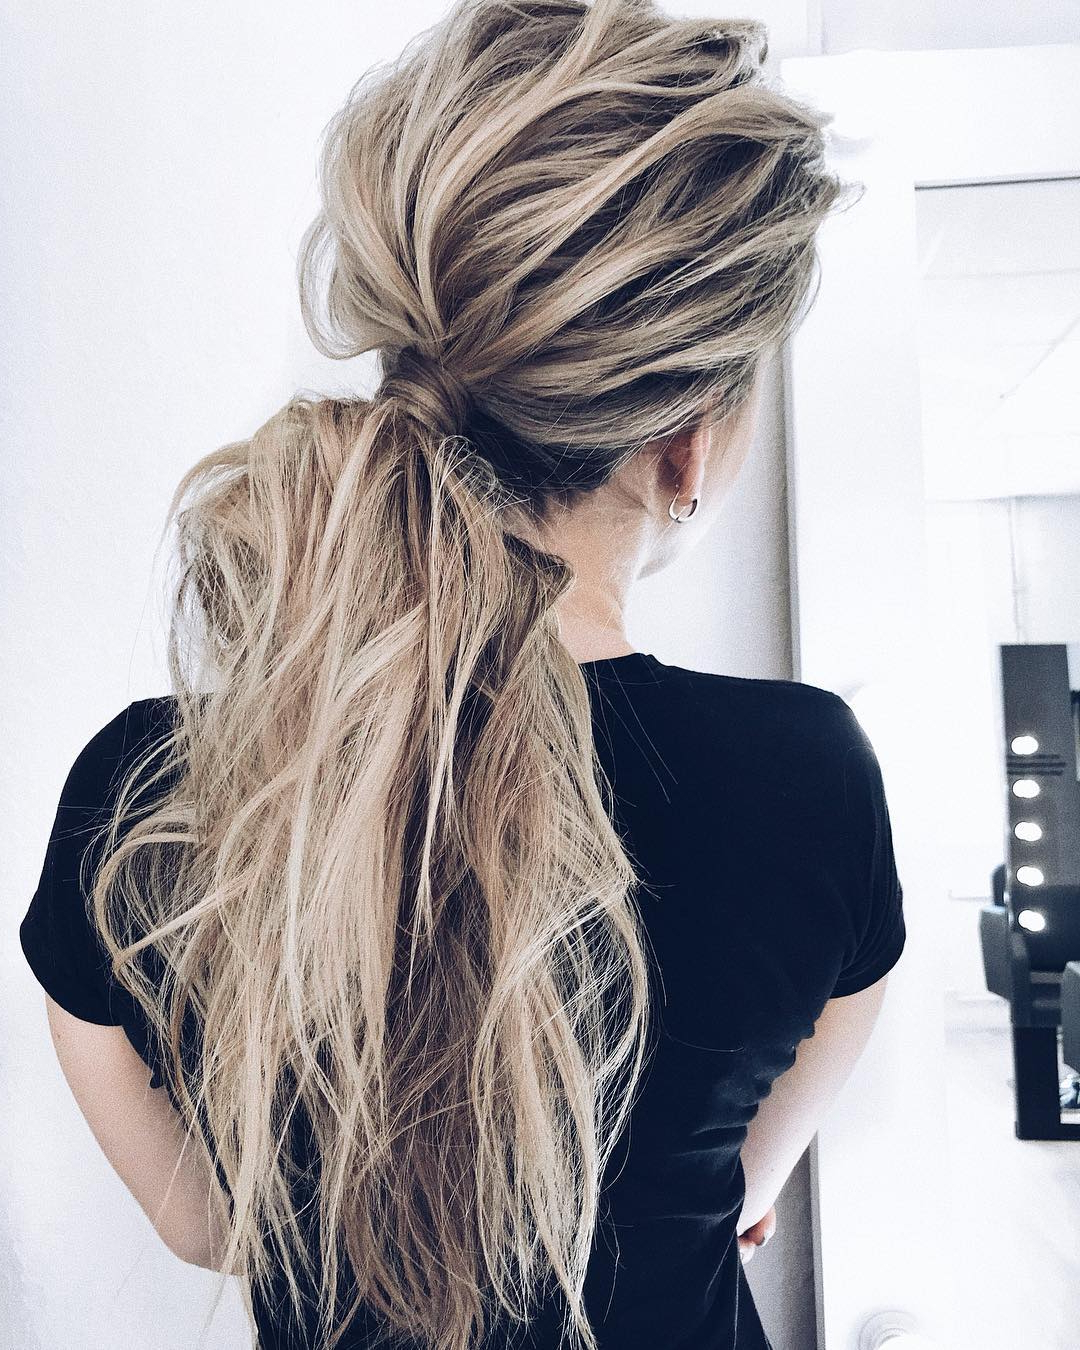 10 Creative Ponytail Hairstyles For Long Hair, Summer In Well Known Messy High Ponytail Hairstyles With Teased Top (View 4 of 20)